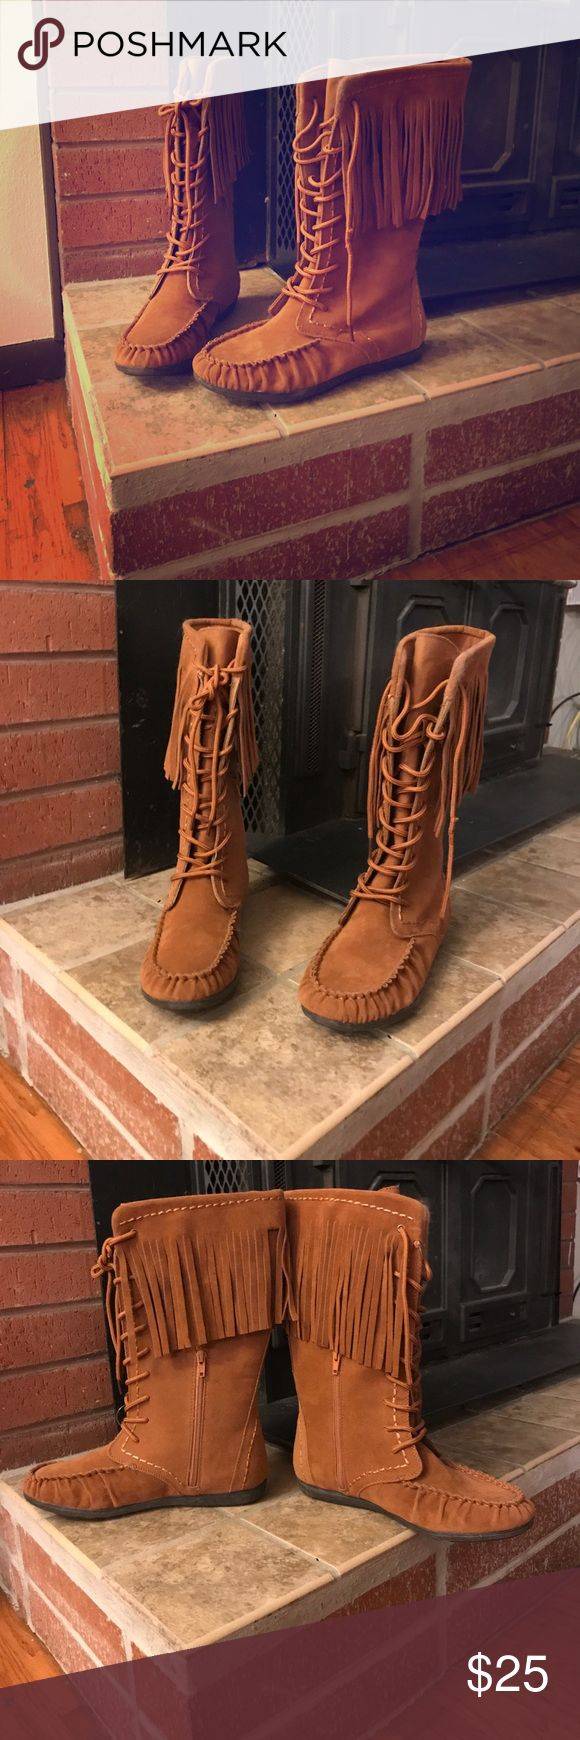 Brand new! Rampage lace up fringe boots Size 8.5 brand new light brown boots. Has long fringe around the top part. Lace up the front and zippers on the inside. These are super cute! Rampage brand. Perfect winter boots to add a little flare. ❤️❤️ Rampage Shoes Lace Up Boots